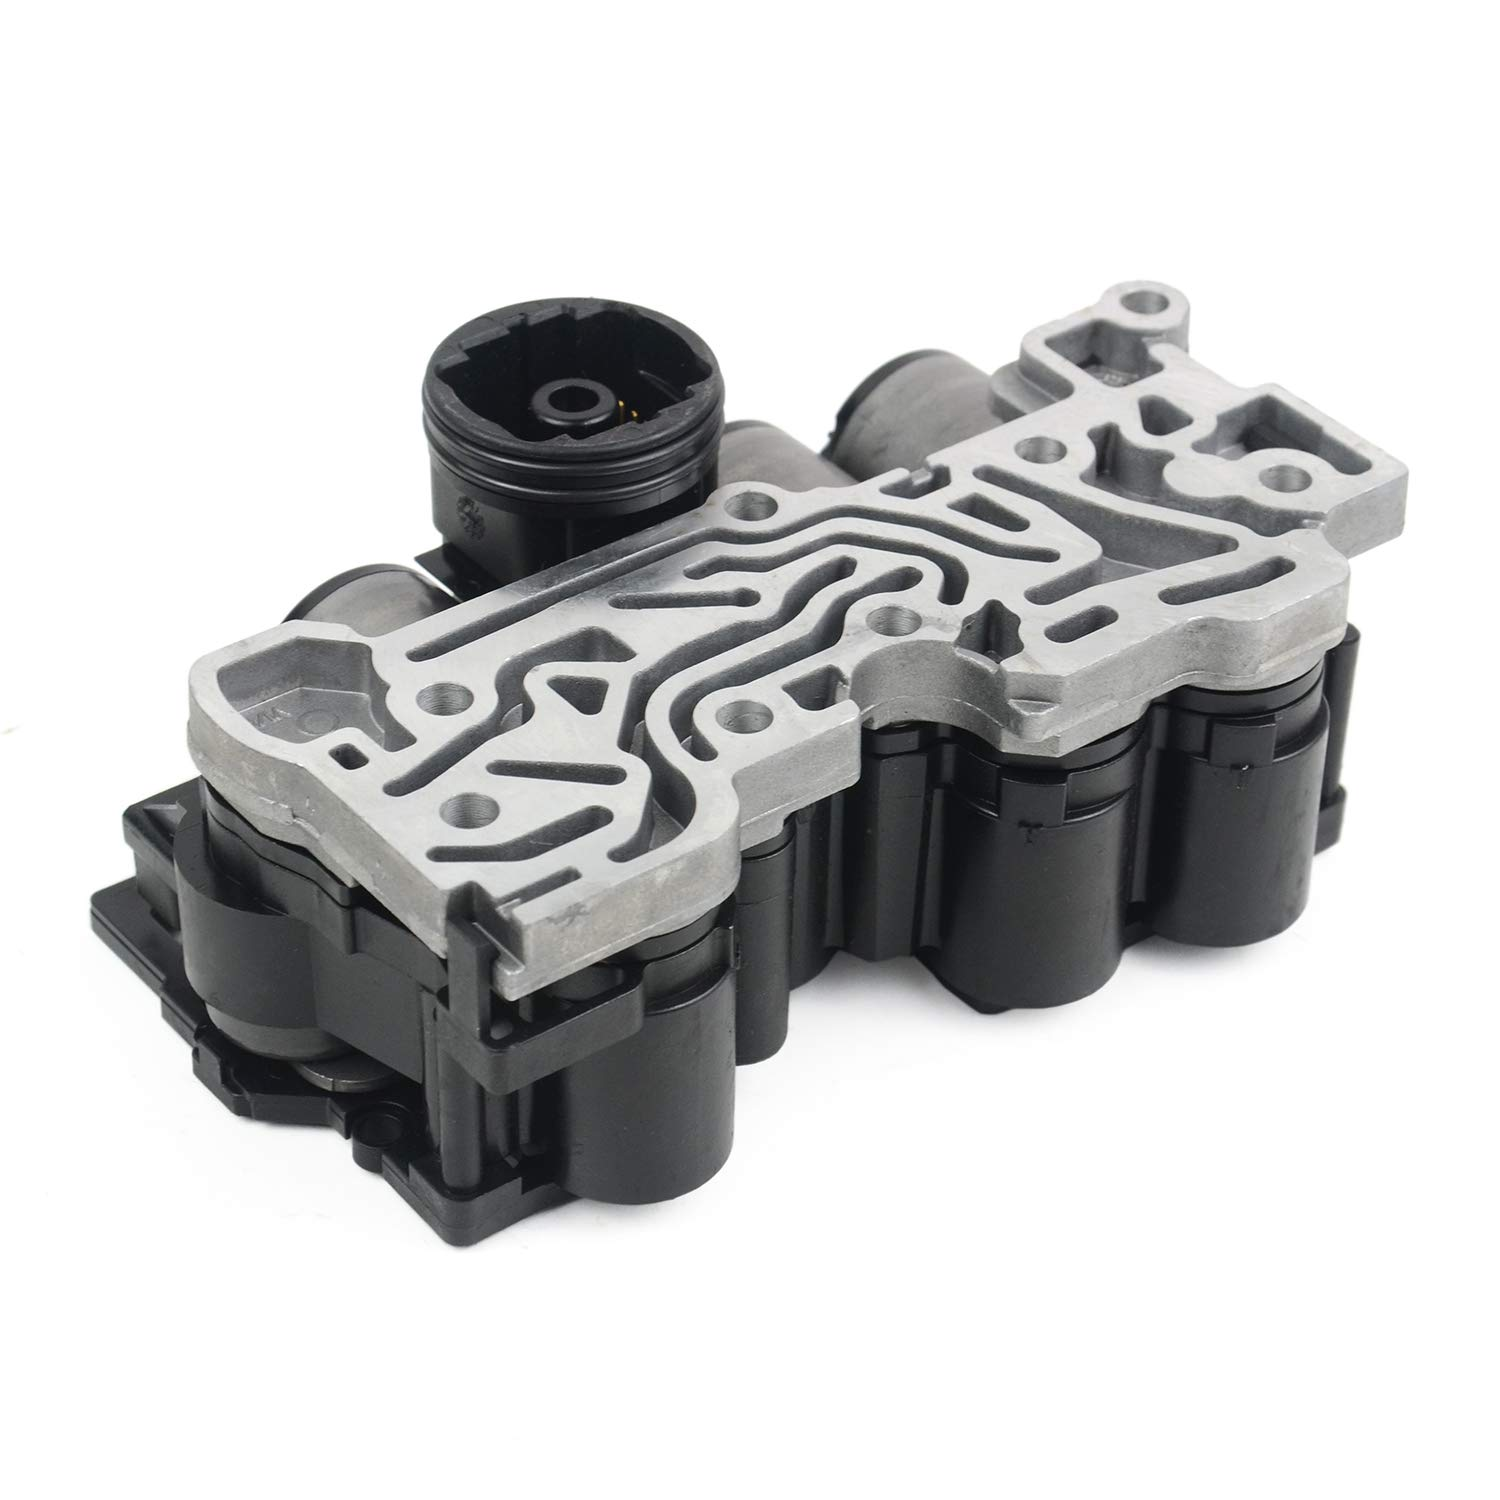 5R55W Explorer Mustang Mercury 02-On Transmission Solenoid Pack 9L2Z-7G234-AA 9L2Z-7G391-AA for Ford 5R55S